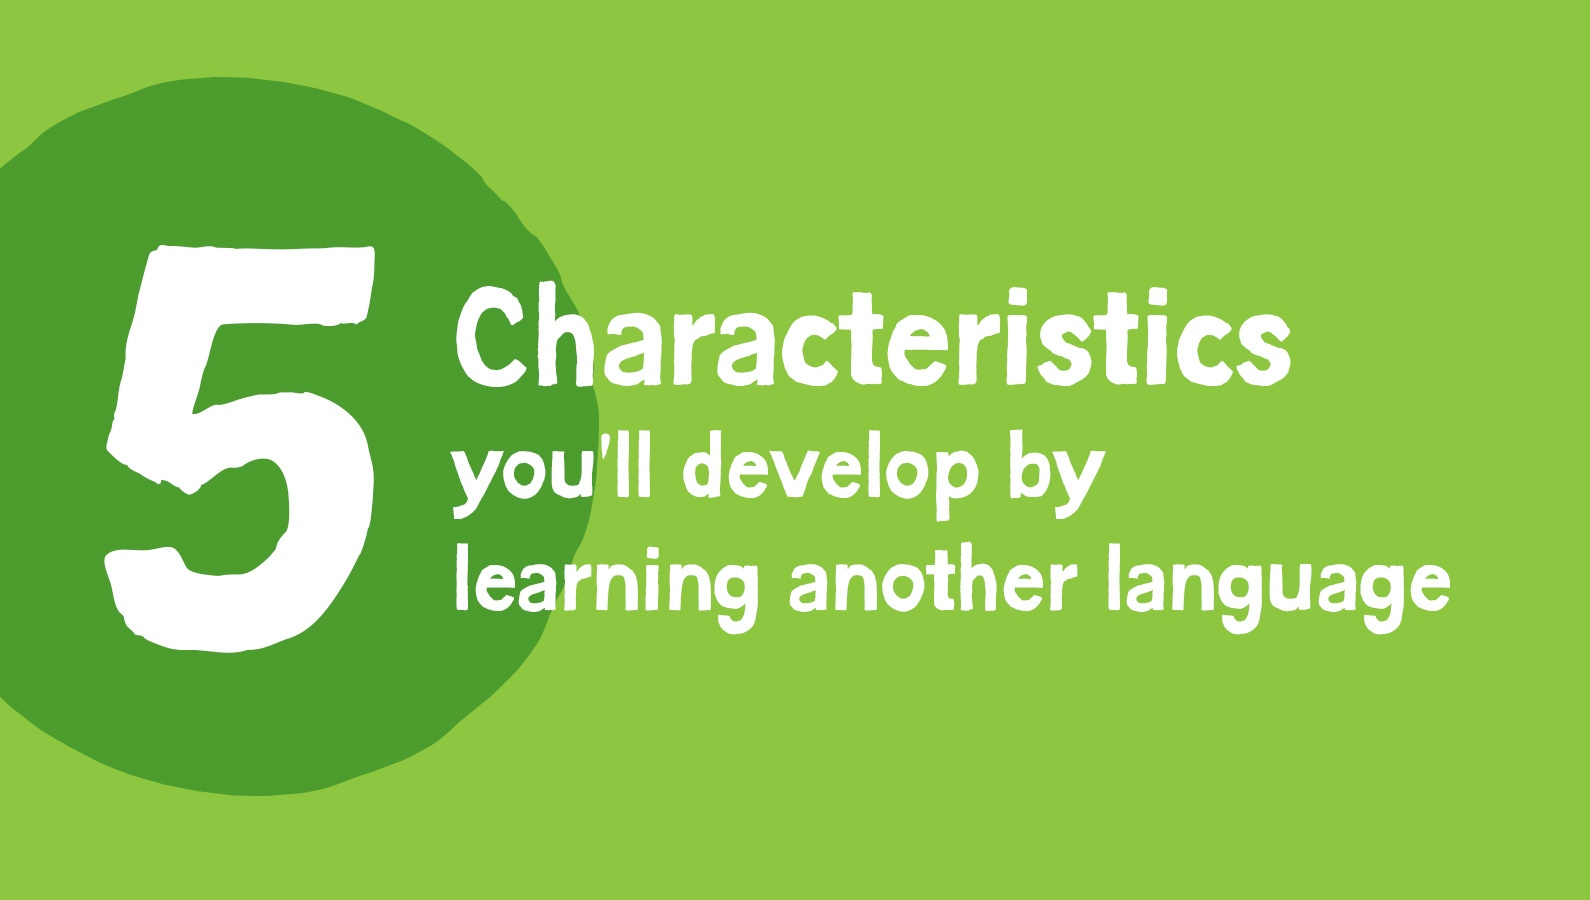 Five Characteristics You'll Develop by Learning Another Language